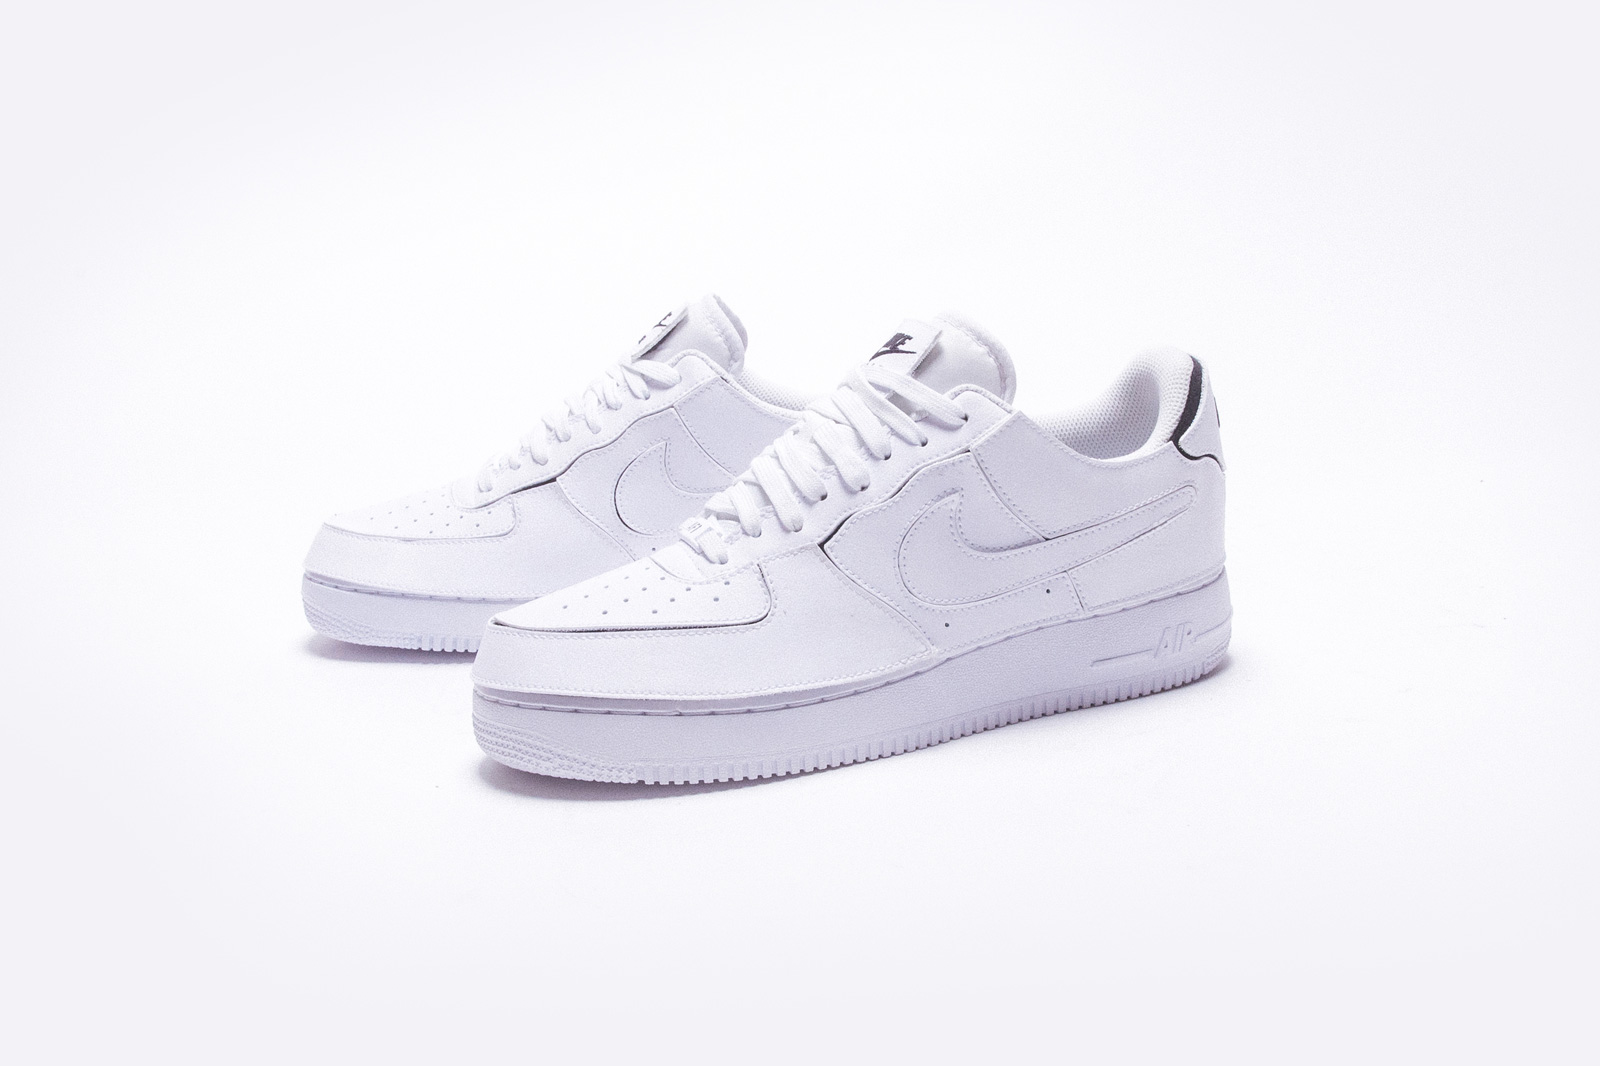 nike-air-force-1-low-velcro-cz5093-100-release-20201206